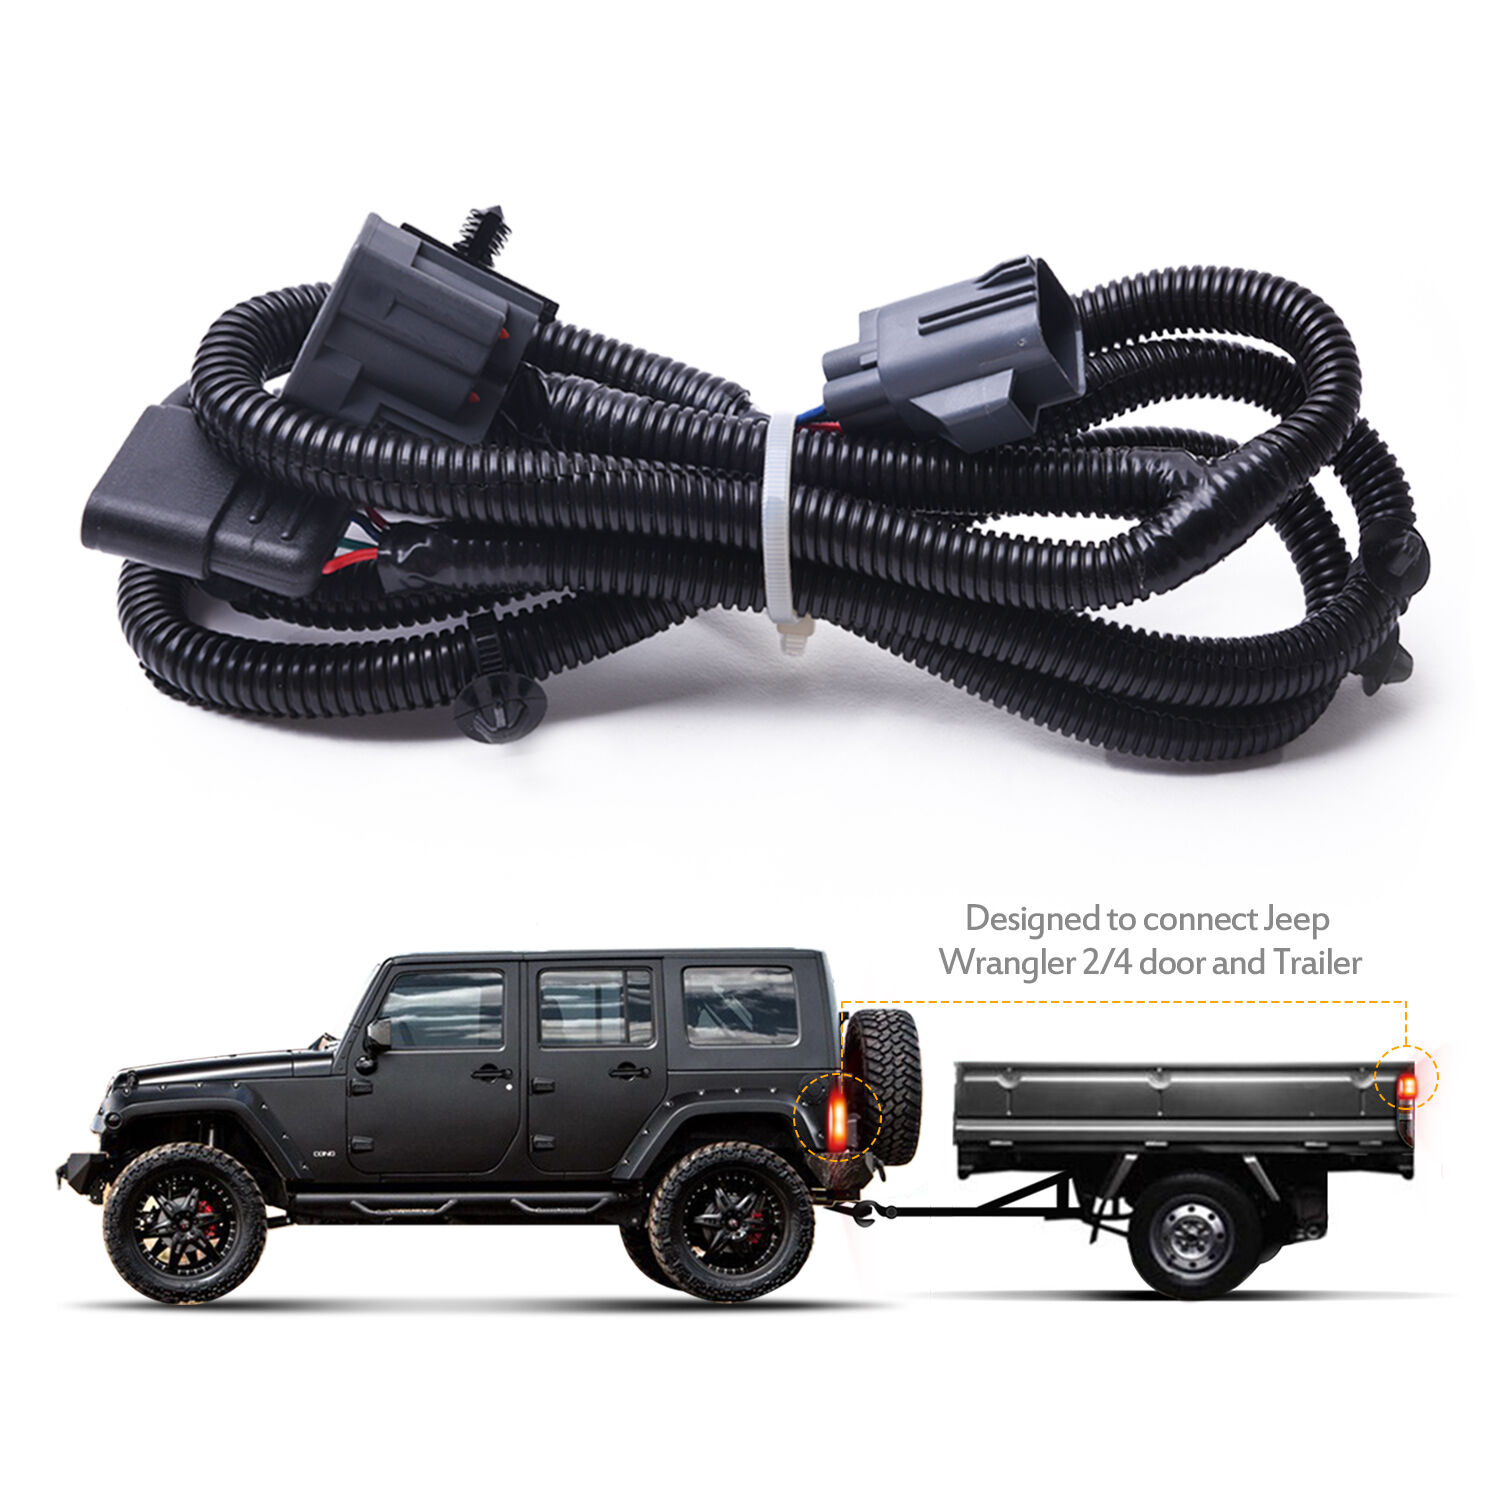 Wire Retainers Harness Boards Just Another Wiring Diagram Blog Gm Jeep Retainer Tie Simple Site Rh 16 5 1 Ohnevergnuegen De Automotive Clips